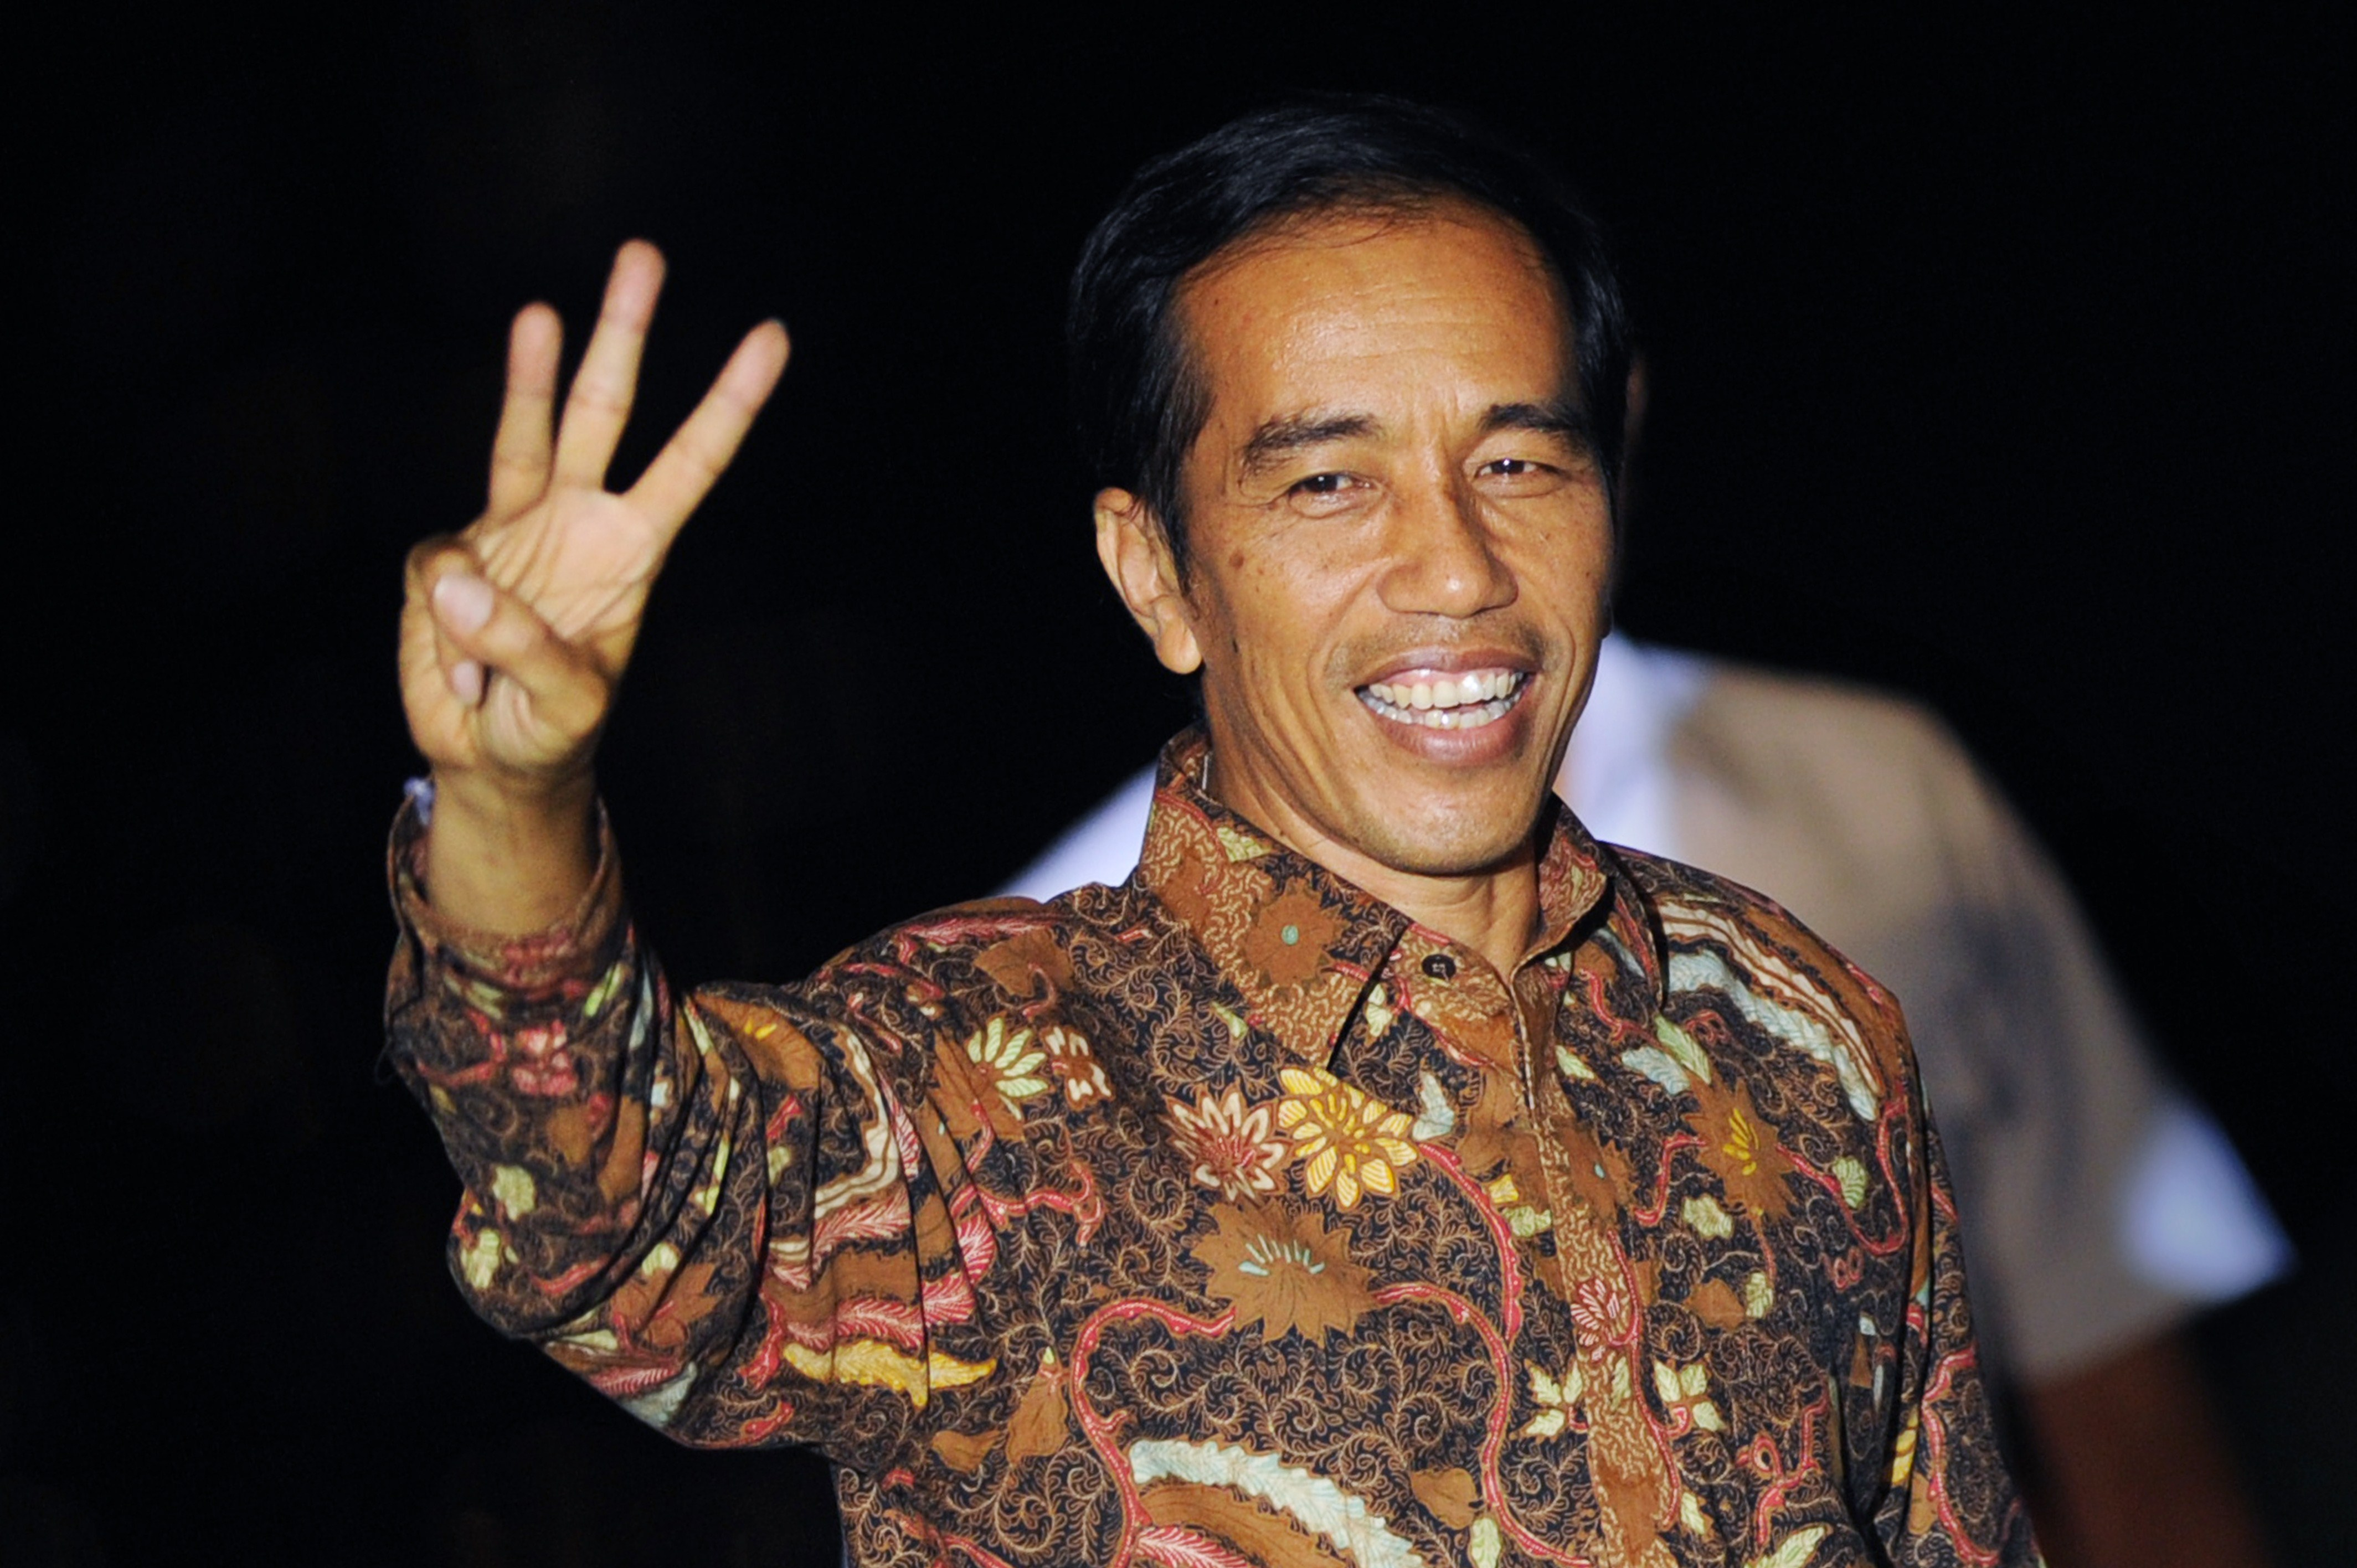 Indonesian President-elect Joko Widodo gestures after delivering his victory address in Jakarta's port district of Sunda Kelapa on July 22, 2014